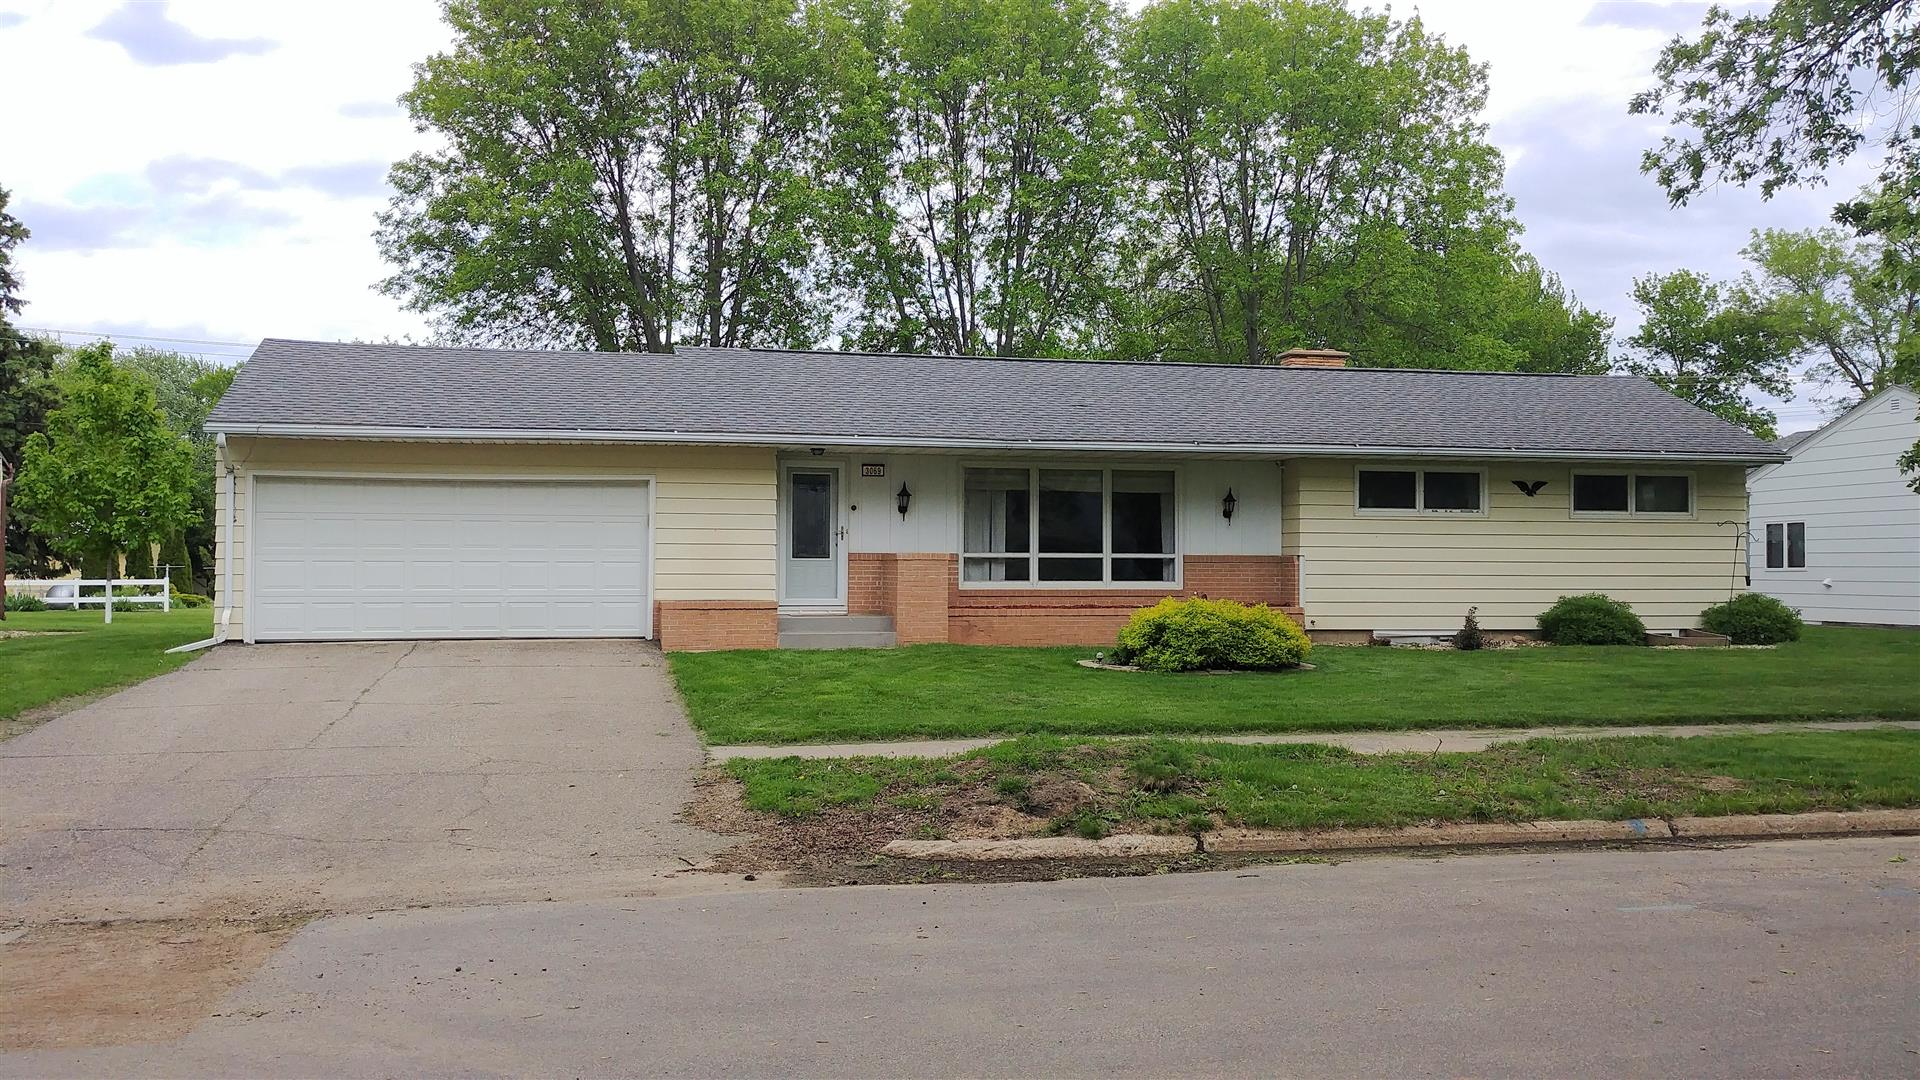 slayton singles Discover 13202 slayton st, omaha, ne 68138 - single family residence with 900 sq ft, 3 beds, 1 bath get the latest property info at realtytrac - 42297300.